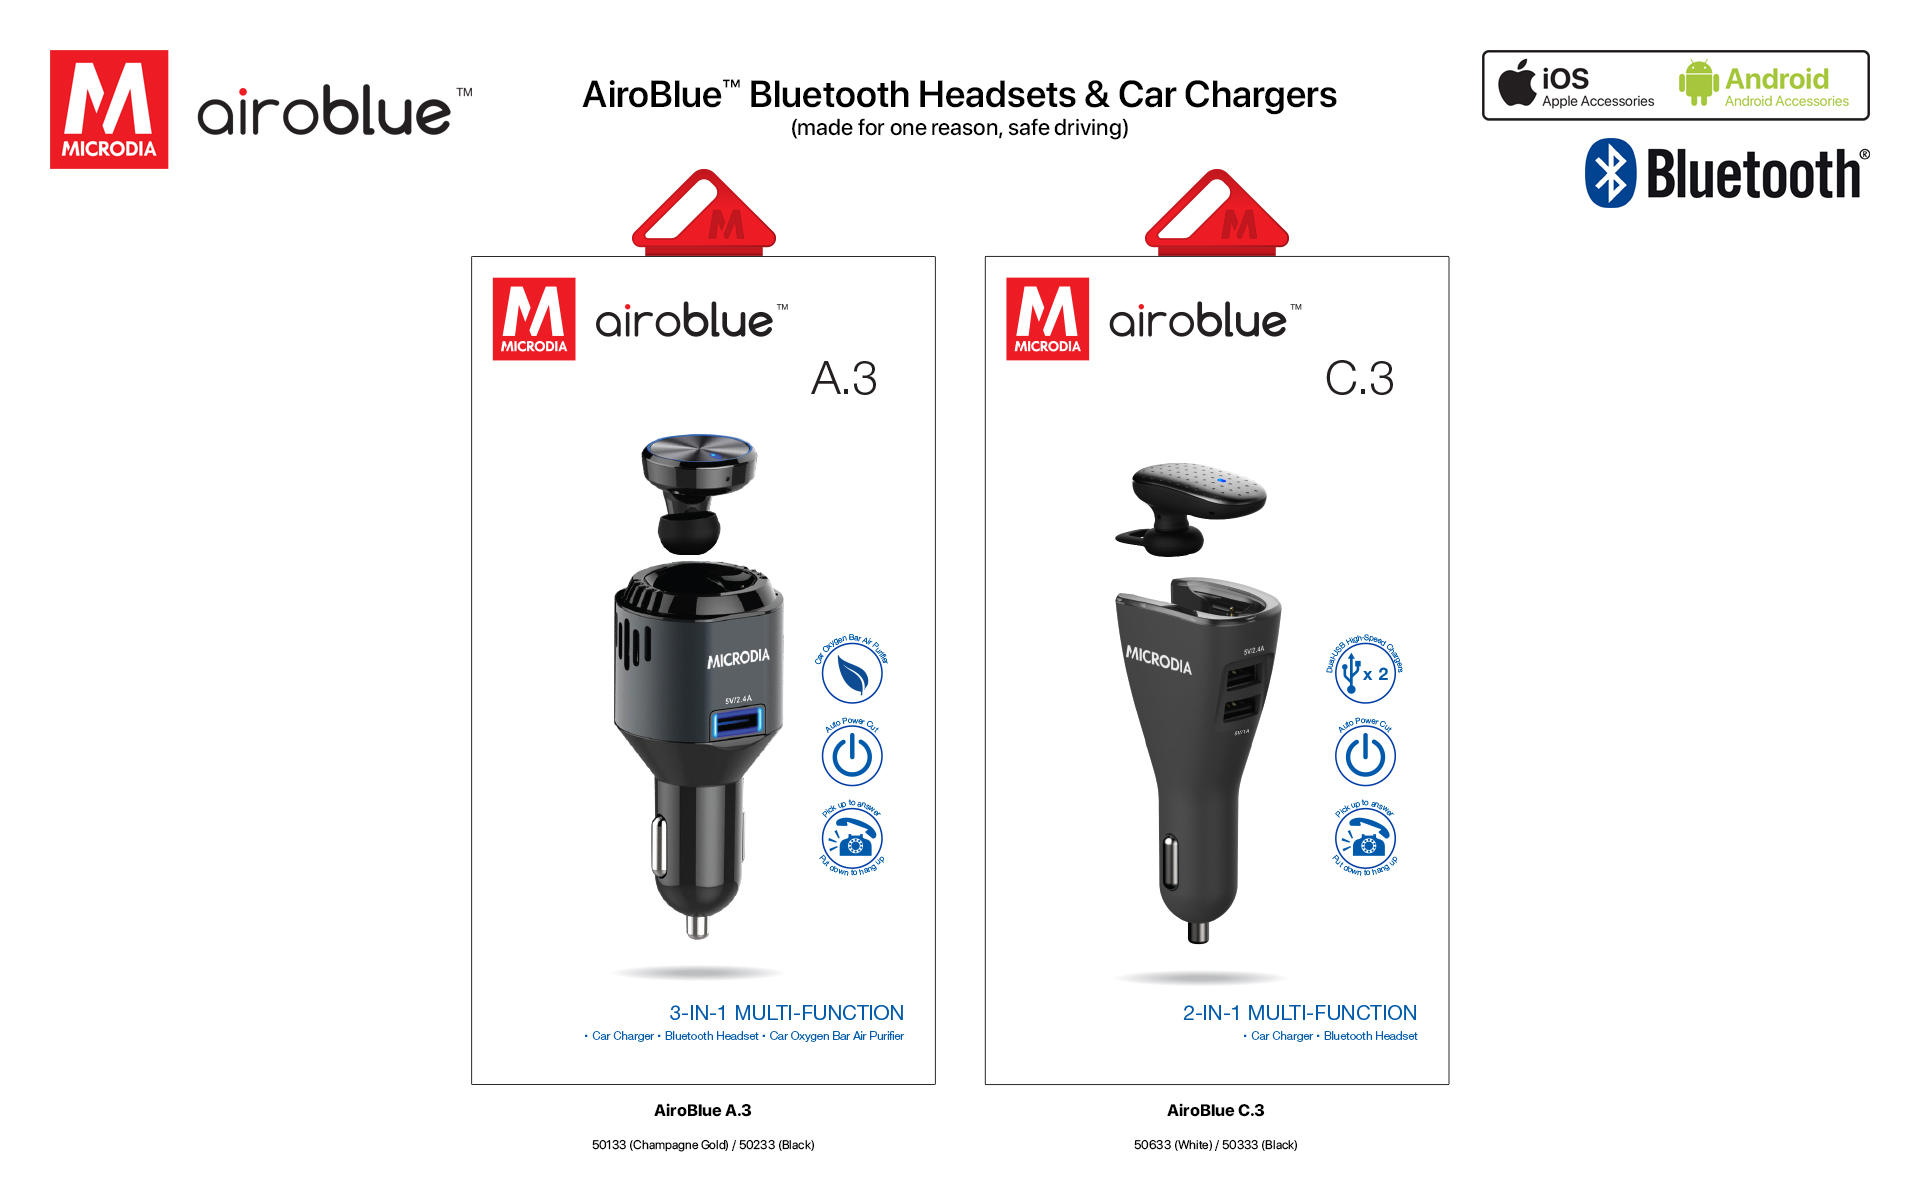 7. Airoblue Bluetooth Headset